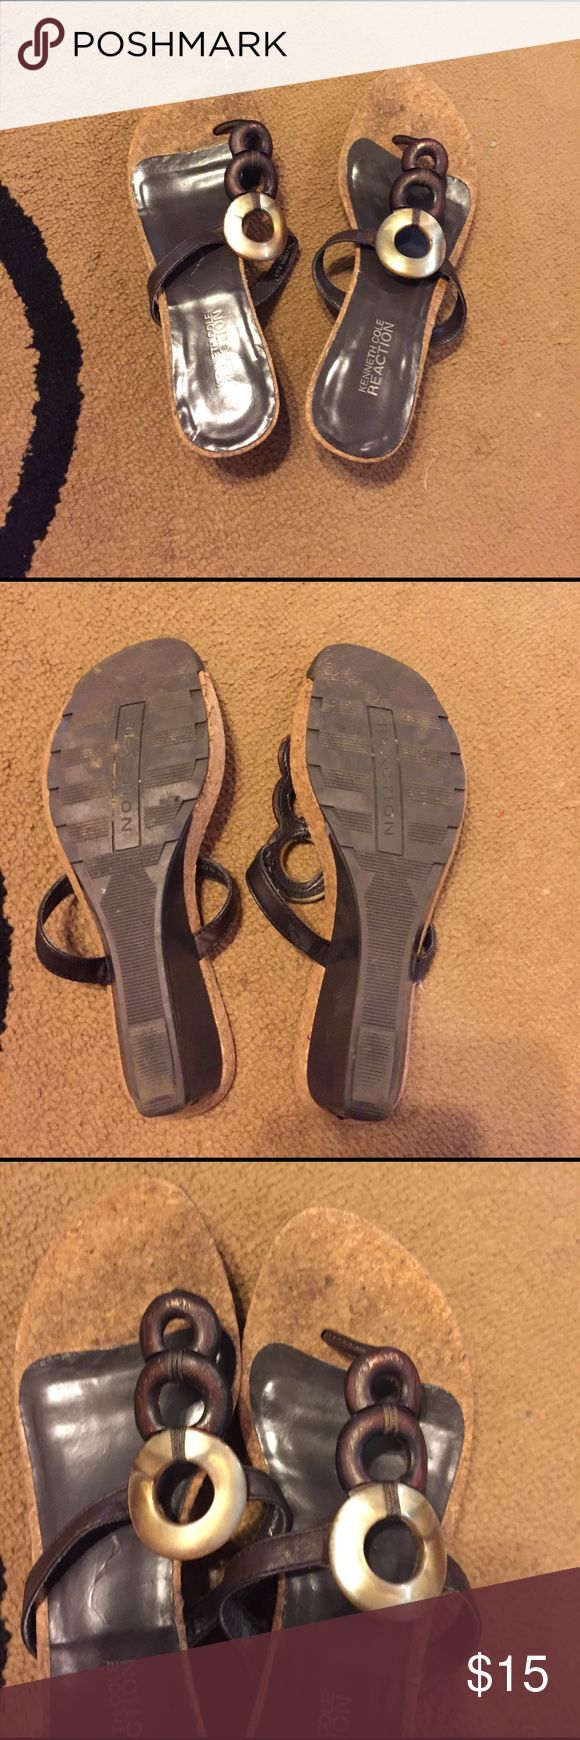 Ladies sandals Ladies wedge sandals. Used condition but still very comfortable & cute for the summer!!:) Kenneth Cole Reaction Shoes Sandals